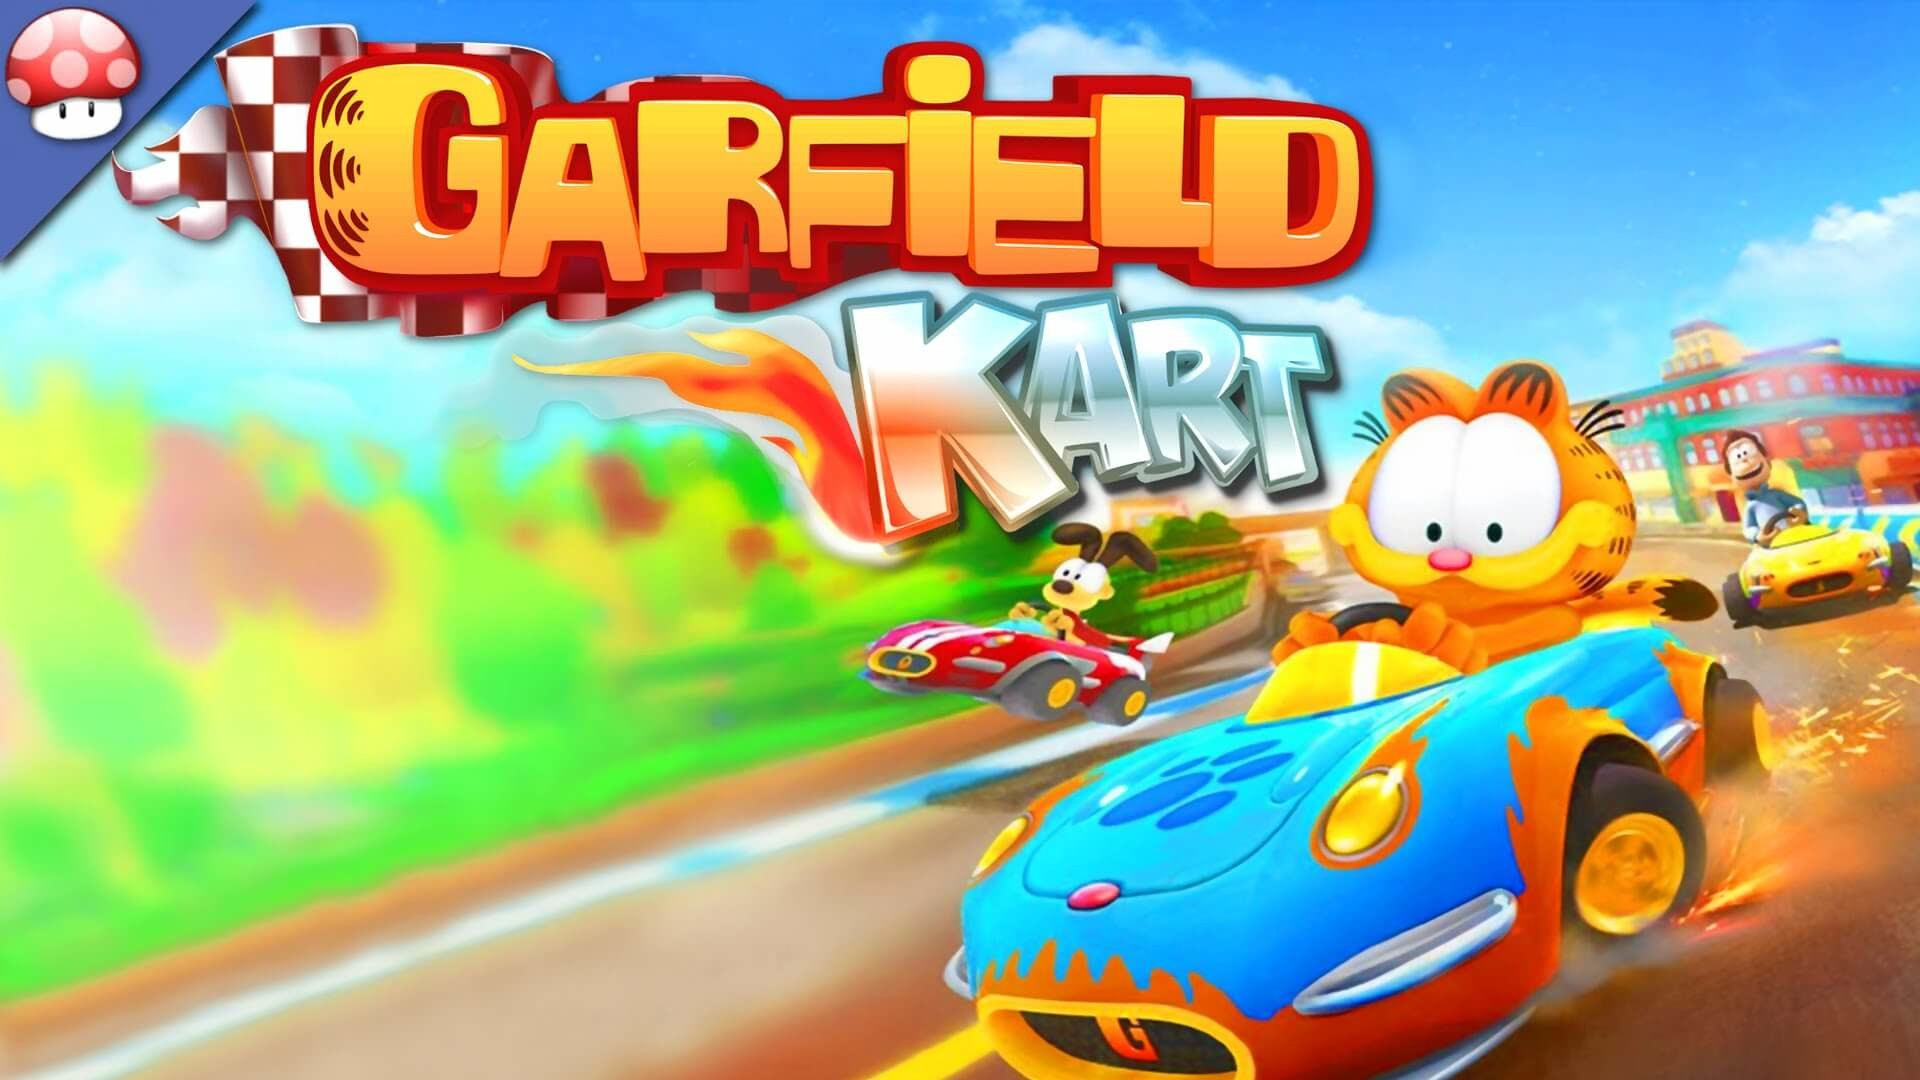 Res: 1920x1080, Garfield Wallpapers for iPad